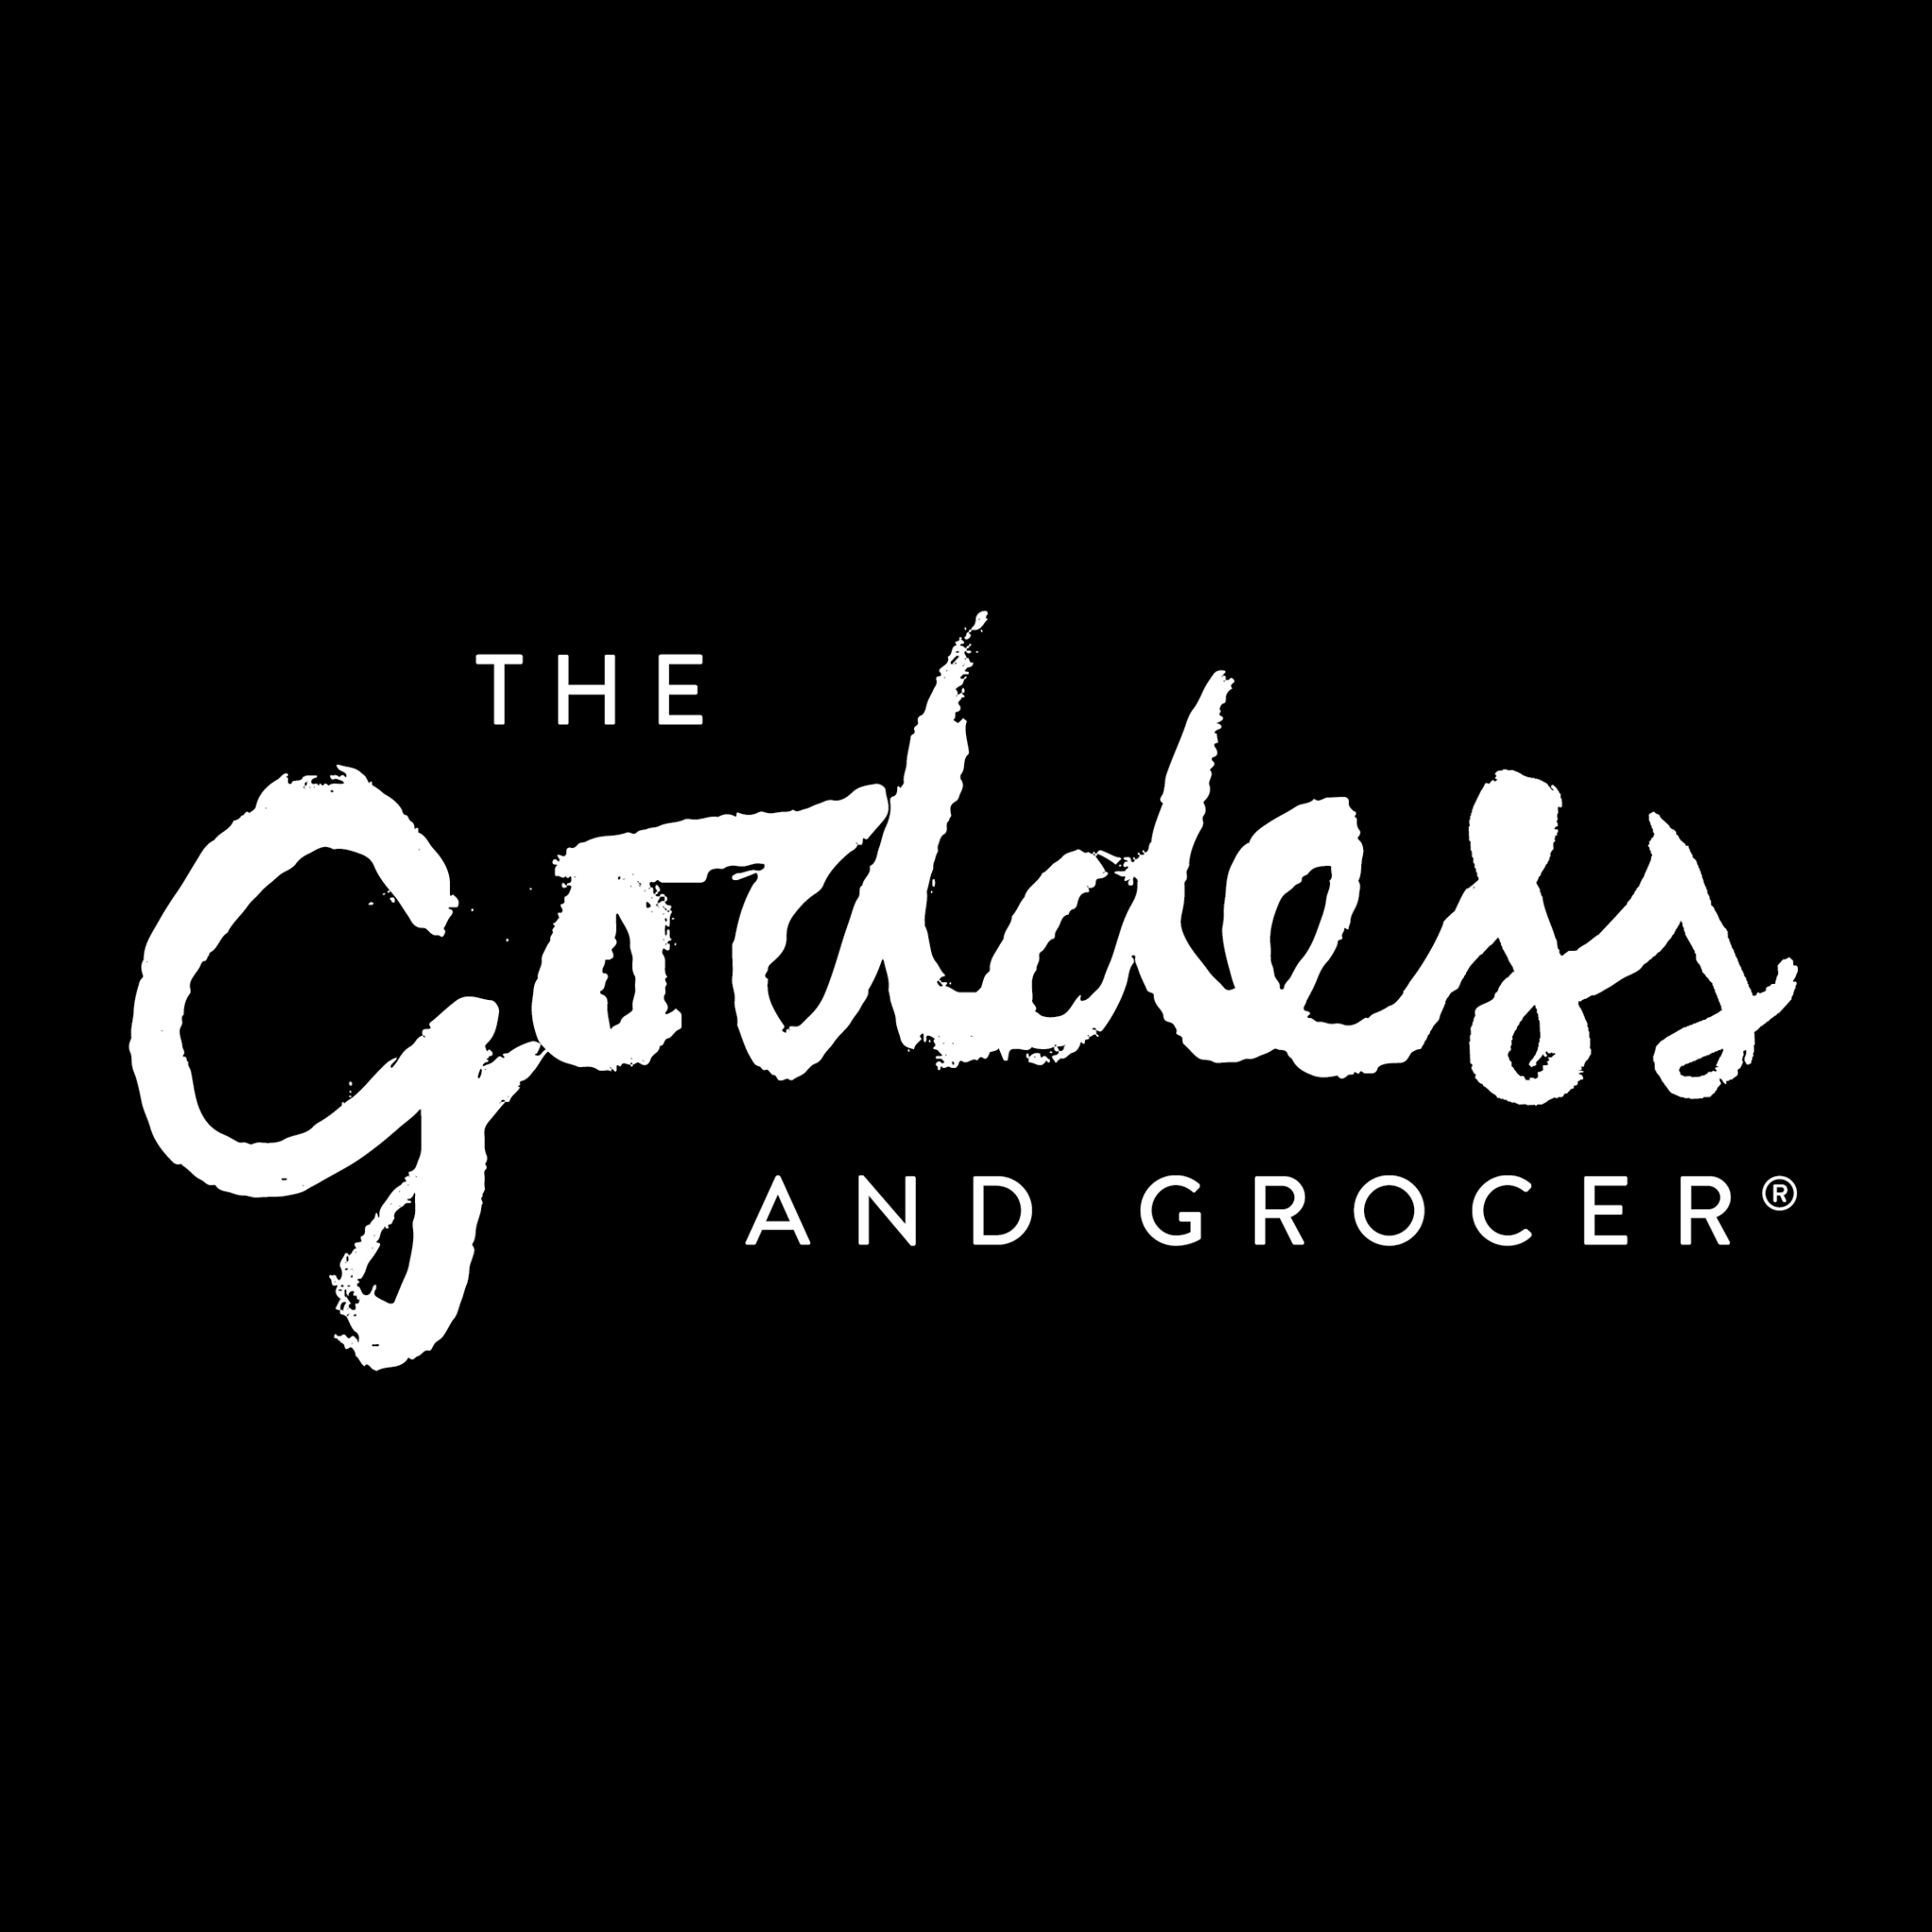 The Goddess and Grocer 1127 N State St